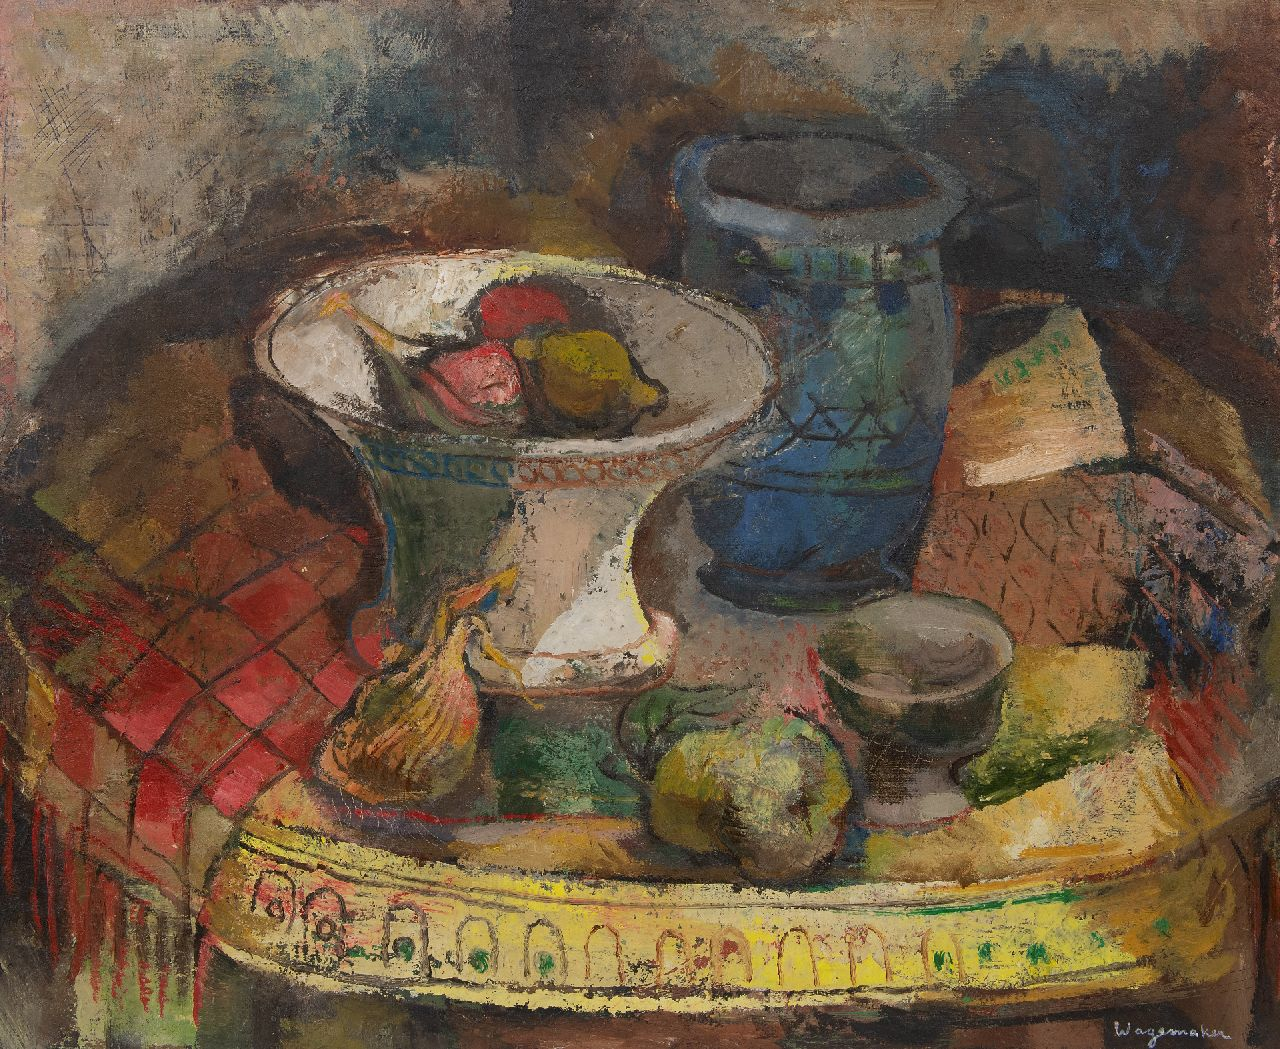 Wagemaker A.B.  | Adriaan Barend 'Jaap' Wagemaker | Paintings offered for sale | A still life with vases and fruit on a table, oil on canvas 70.4 x 85.3 cm, signed l.r.